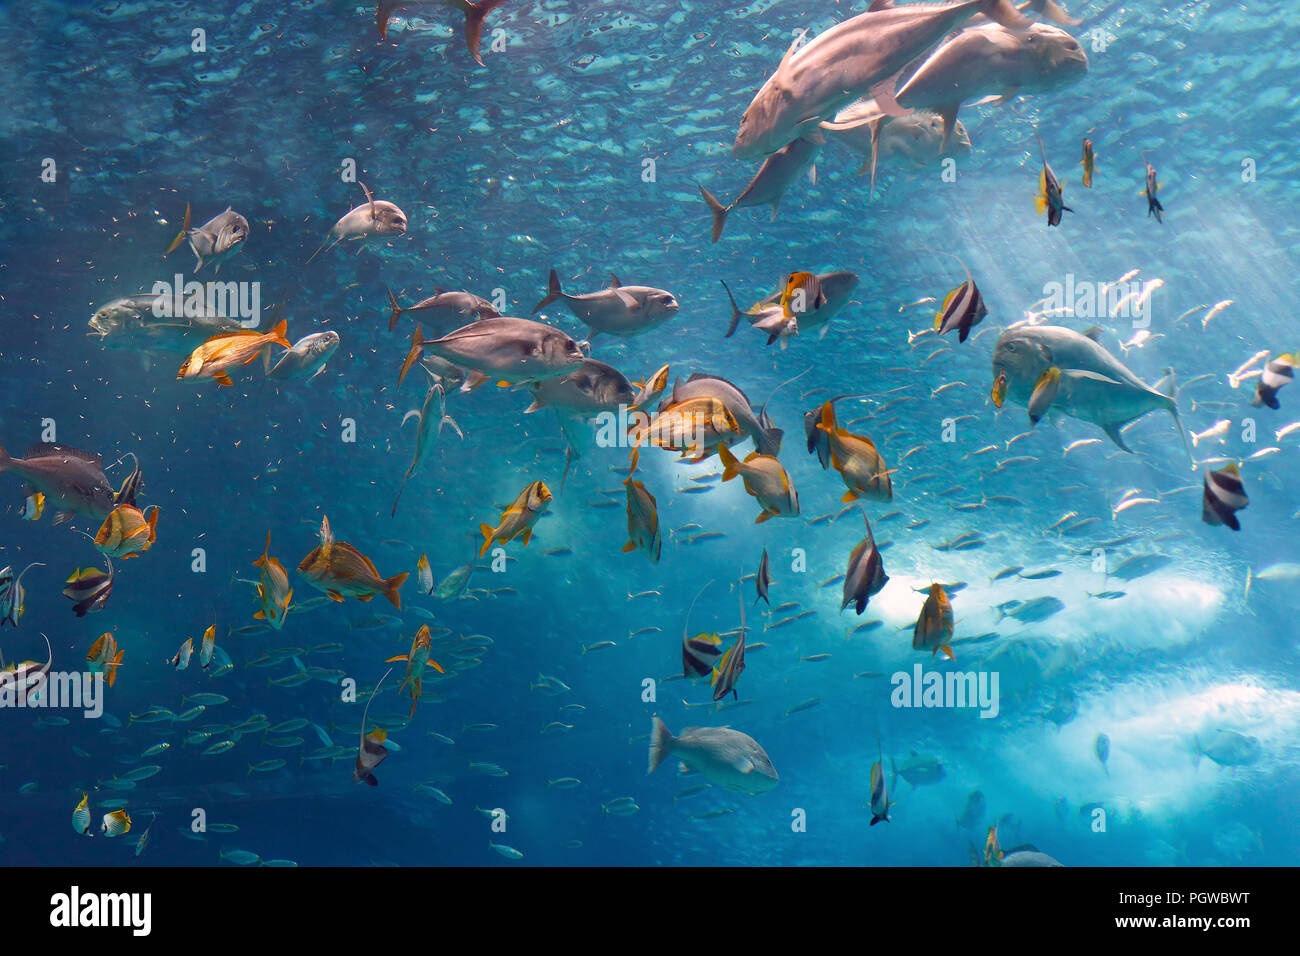 Lisbon, Portugal - March 3, 2014: Colorful tropical fishes of the Lisbon Oceanarium during nourishment - Stock Image